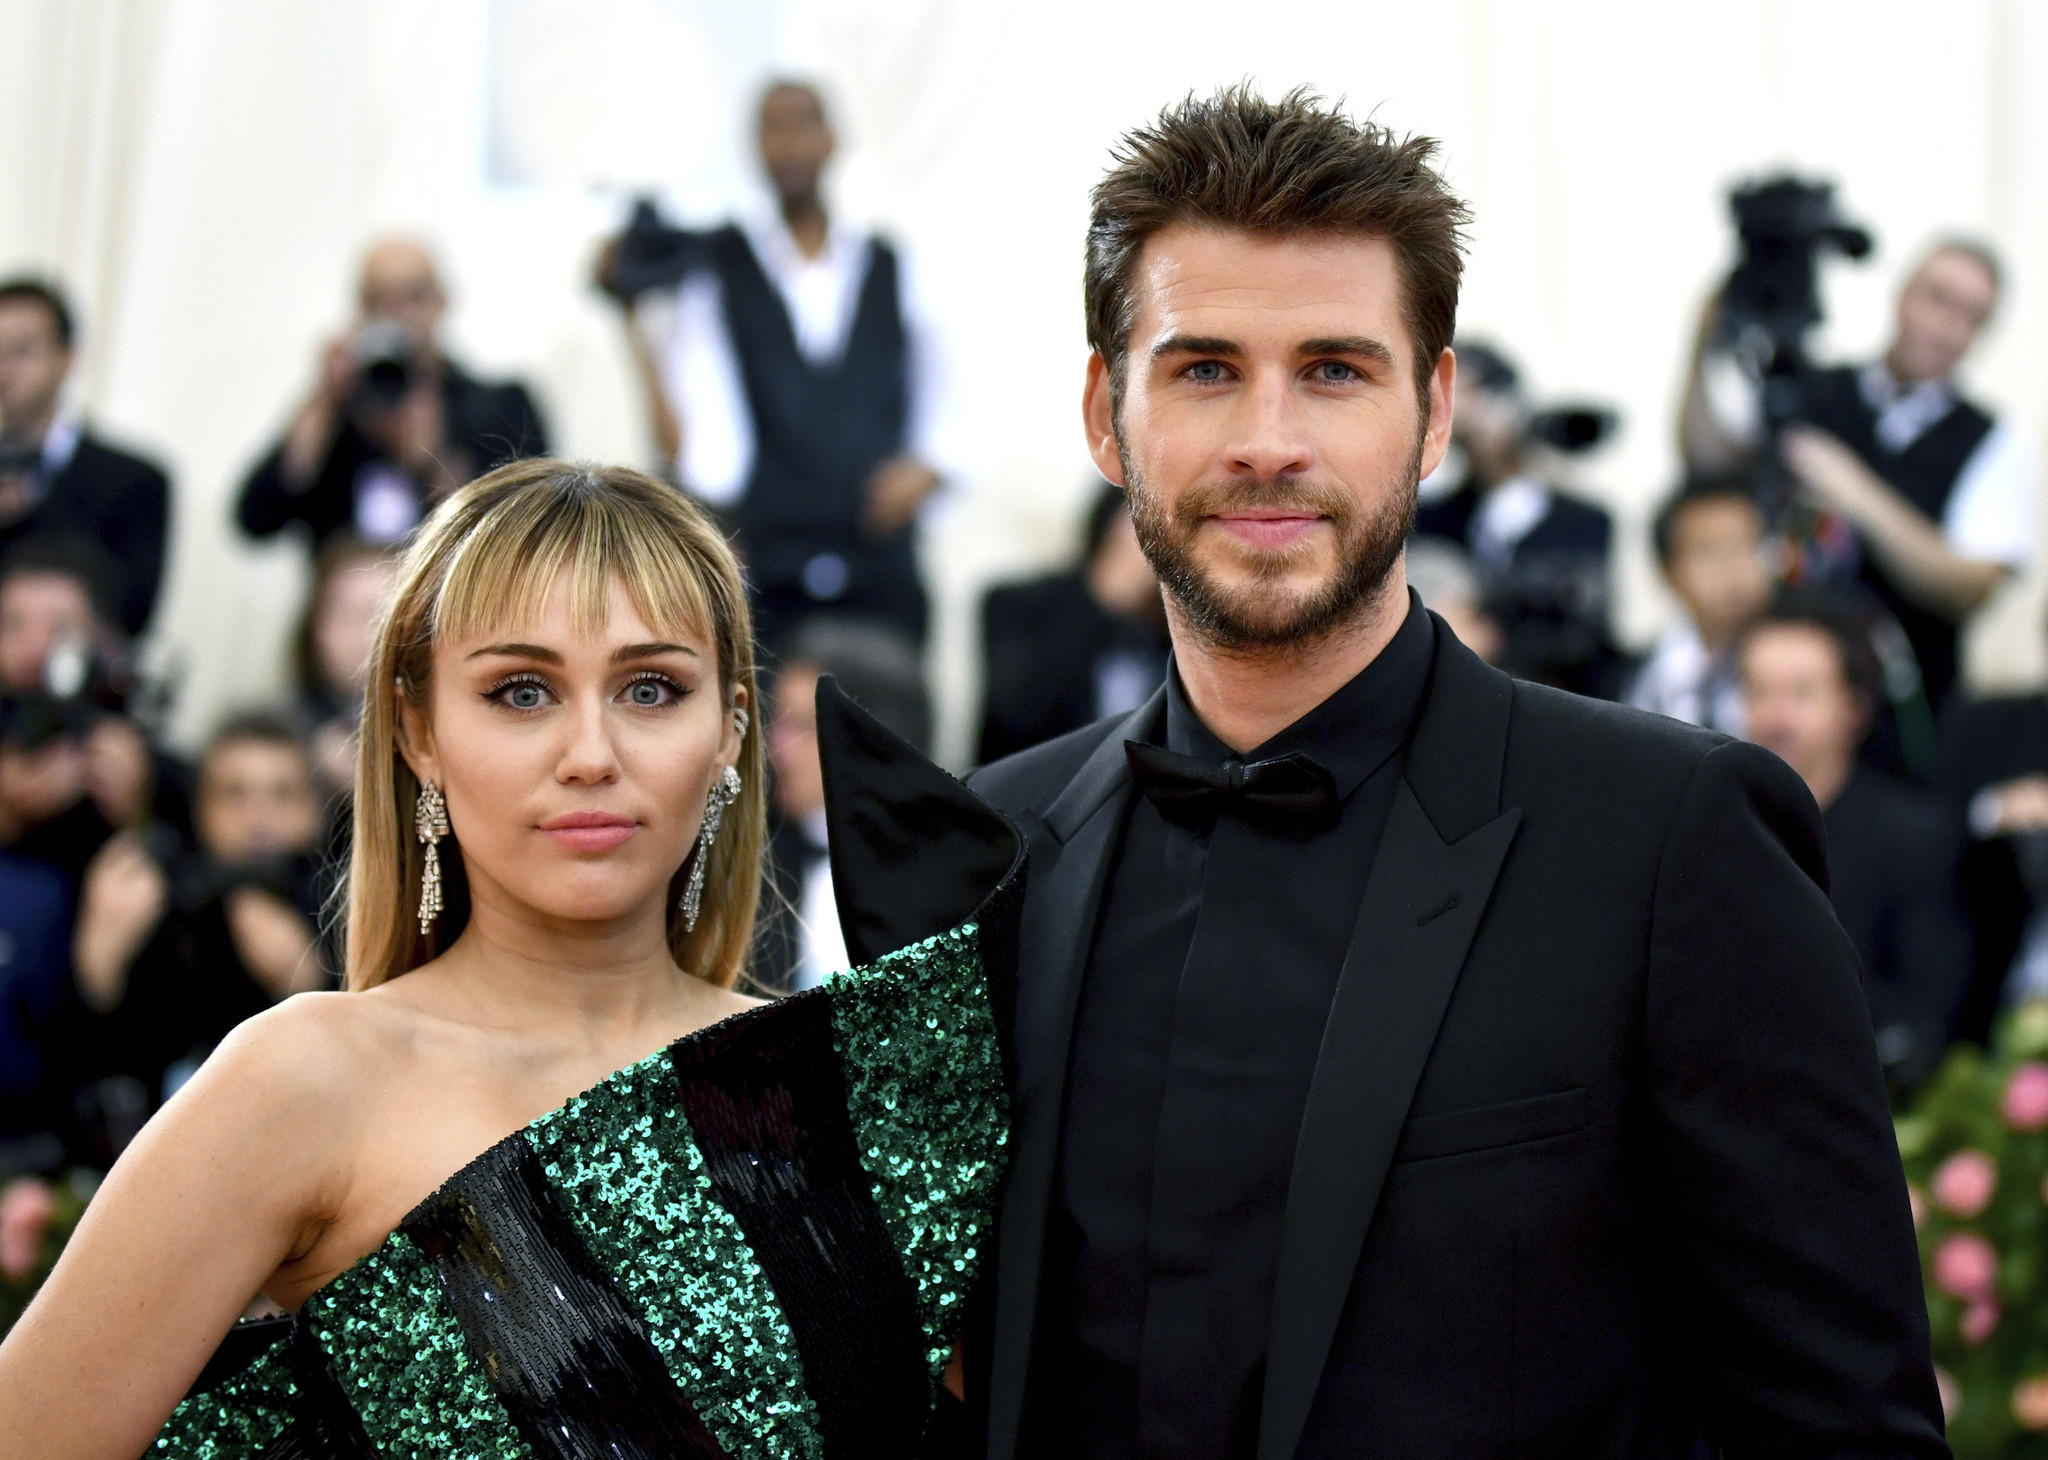 Liam Hemsworth is 'coping well' but 'deserves much better' after split from Miley Cyrus, says sister-in-law